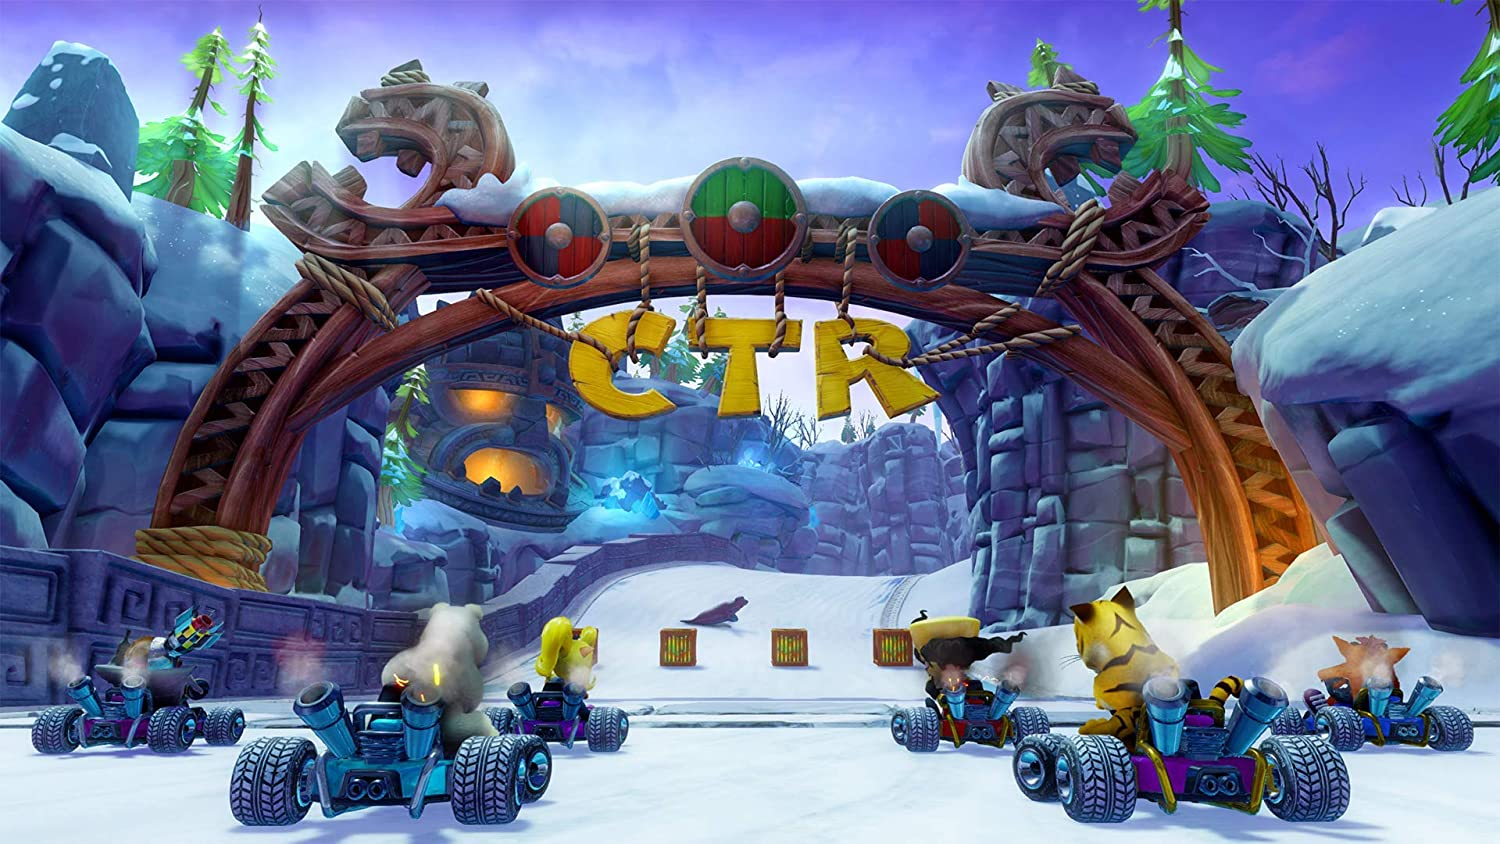 [2019-06-21] Crash Team Racing Nitro Fueled ps4/one/switch 81Bnjr4PGNL._SL1500_